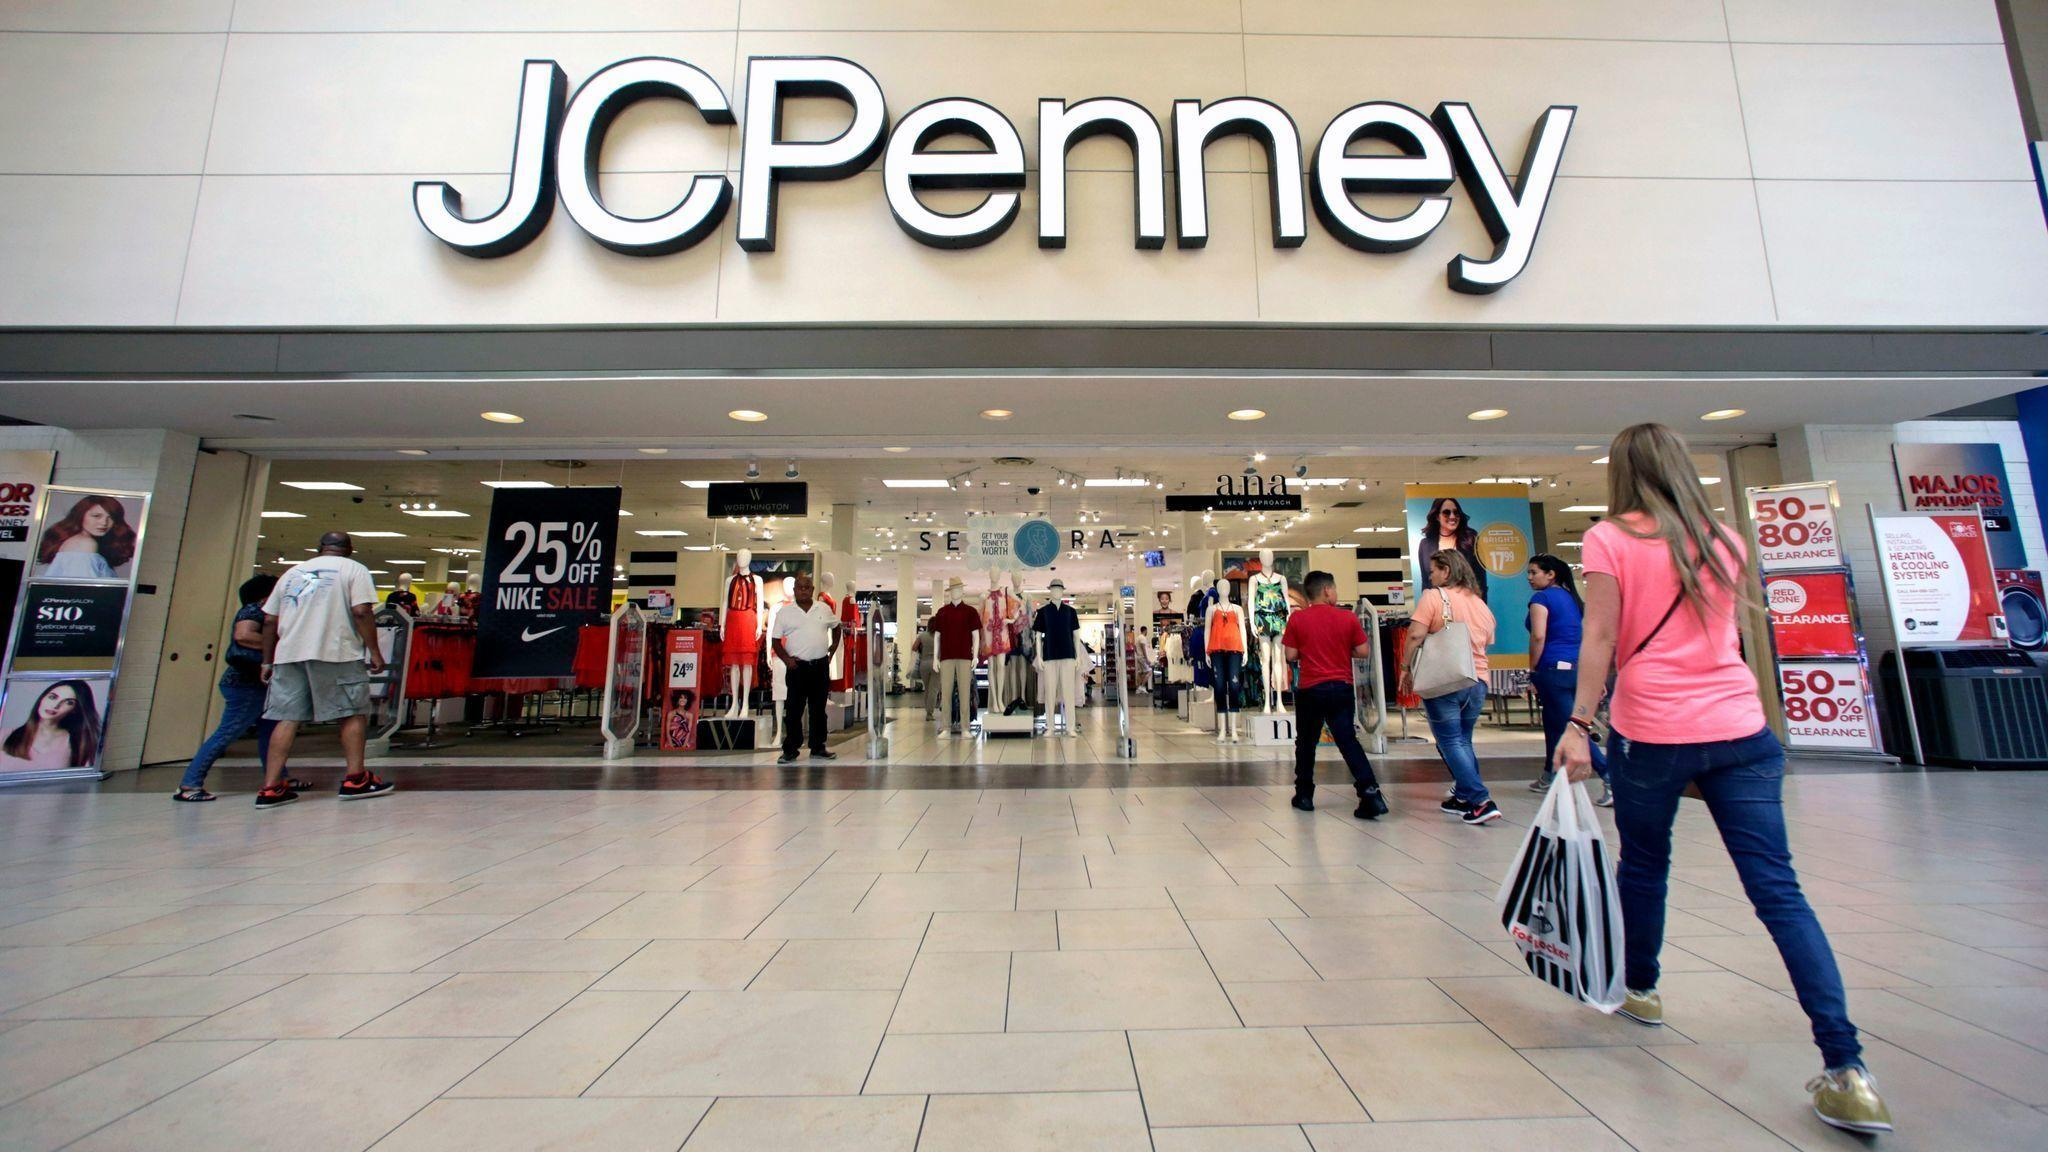 JCPenney expects its three-year growth strategy to boost profit forecasting to wear in summer in 2019